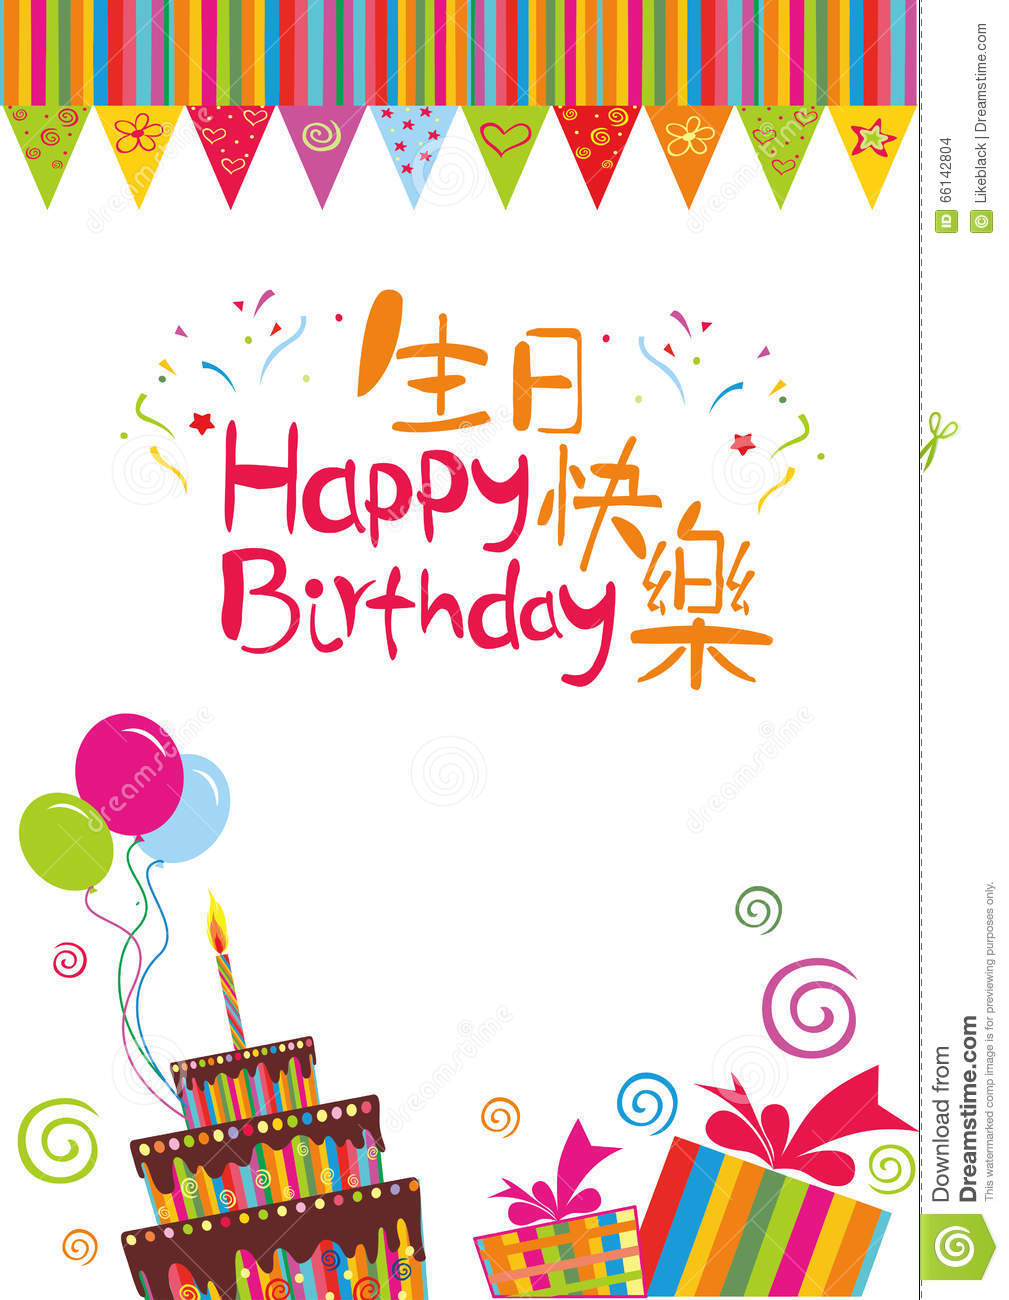 Happy Birthday Card Cover With Chinese Characters Of Saying Along English Artwork Cake And Gift